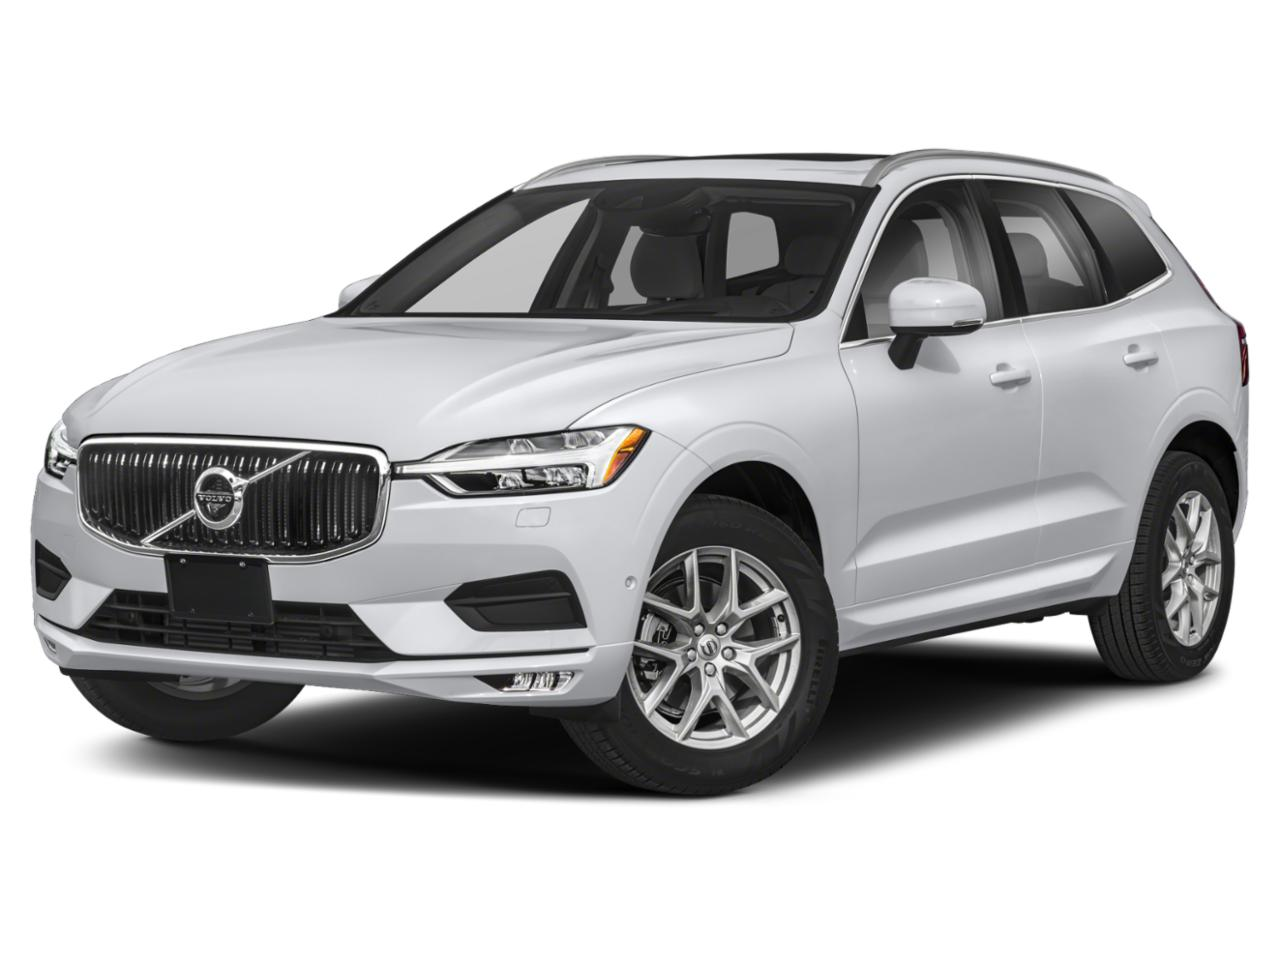 2020 Volvo XC60 Vehicle Photo in Trevose, PA 19053-4984